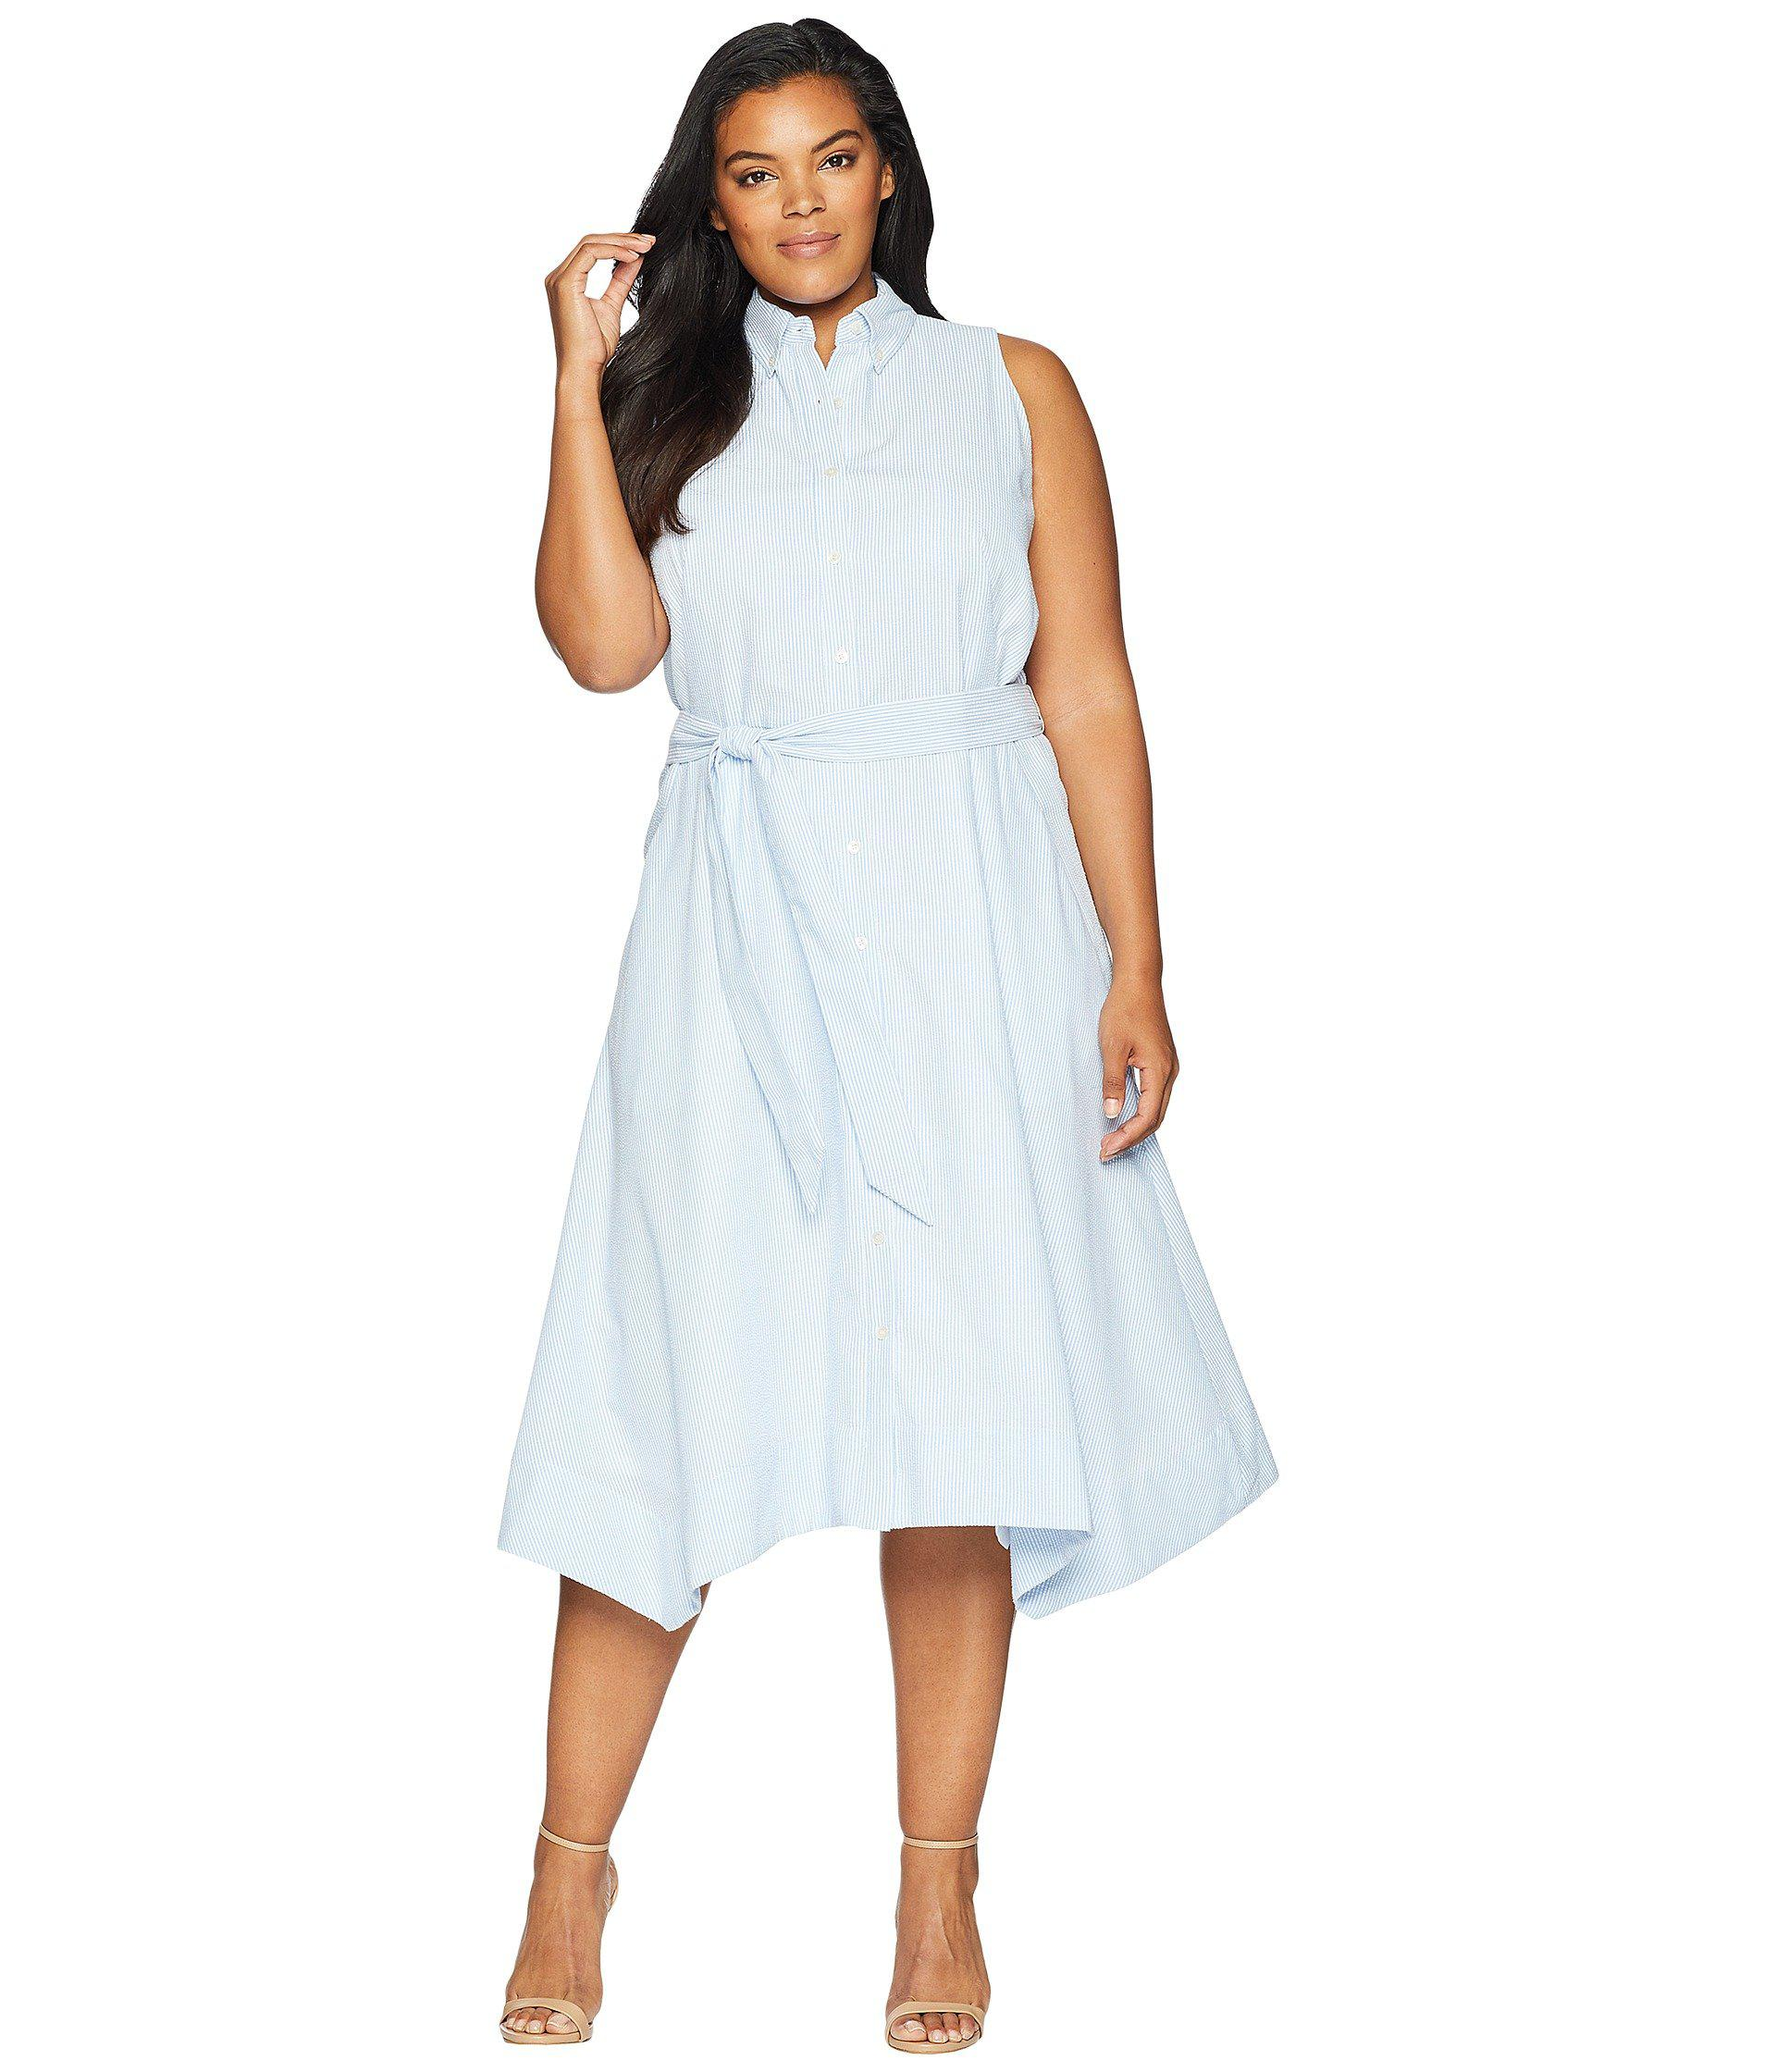 Plus Size Seersucker Shirtdress (blue/white) Women\'s Dress